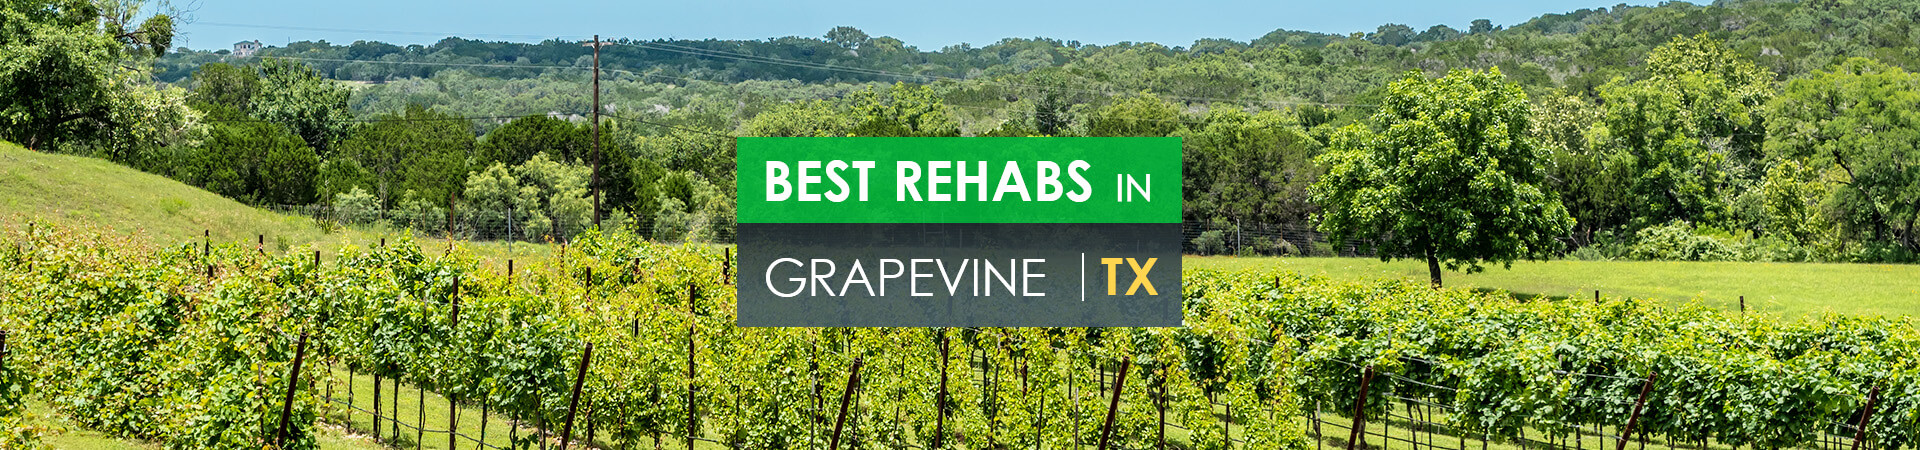 Best rehabs in Grapevine, TX